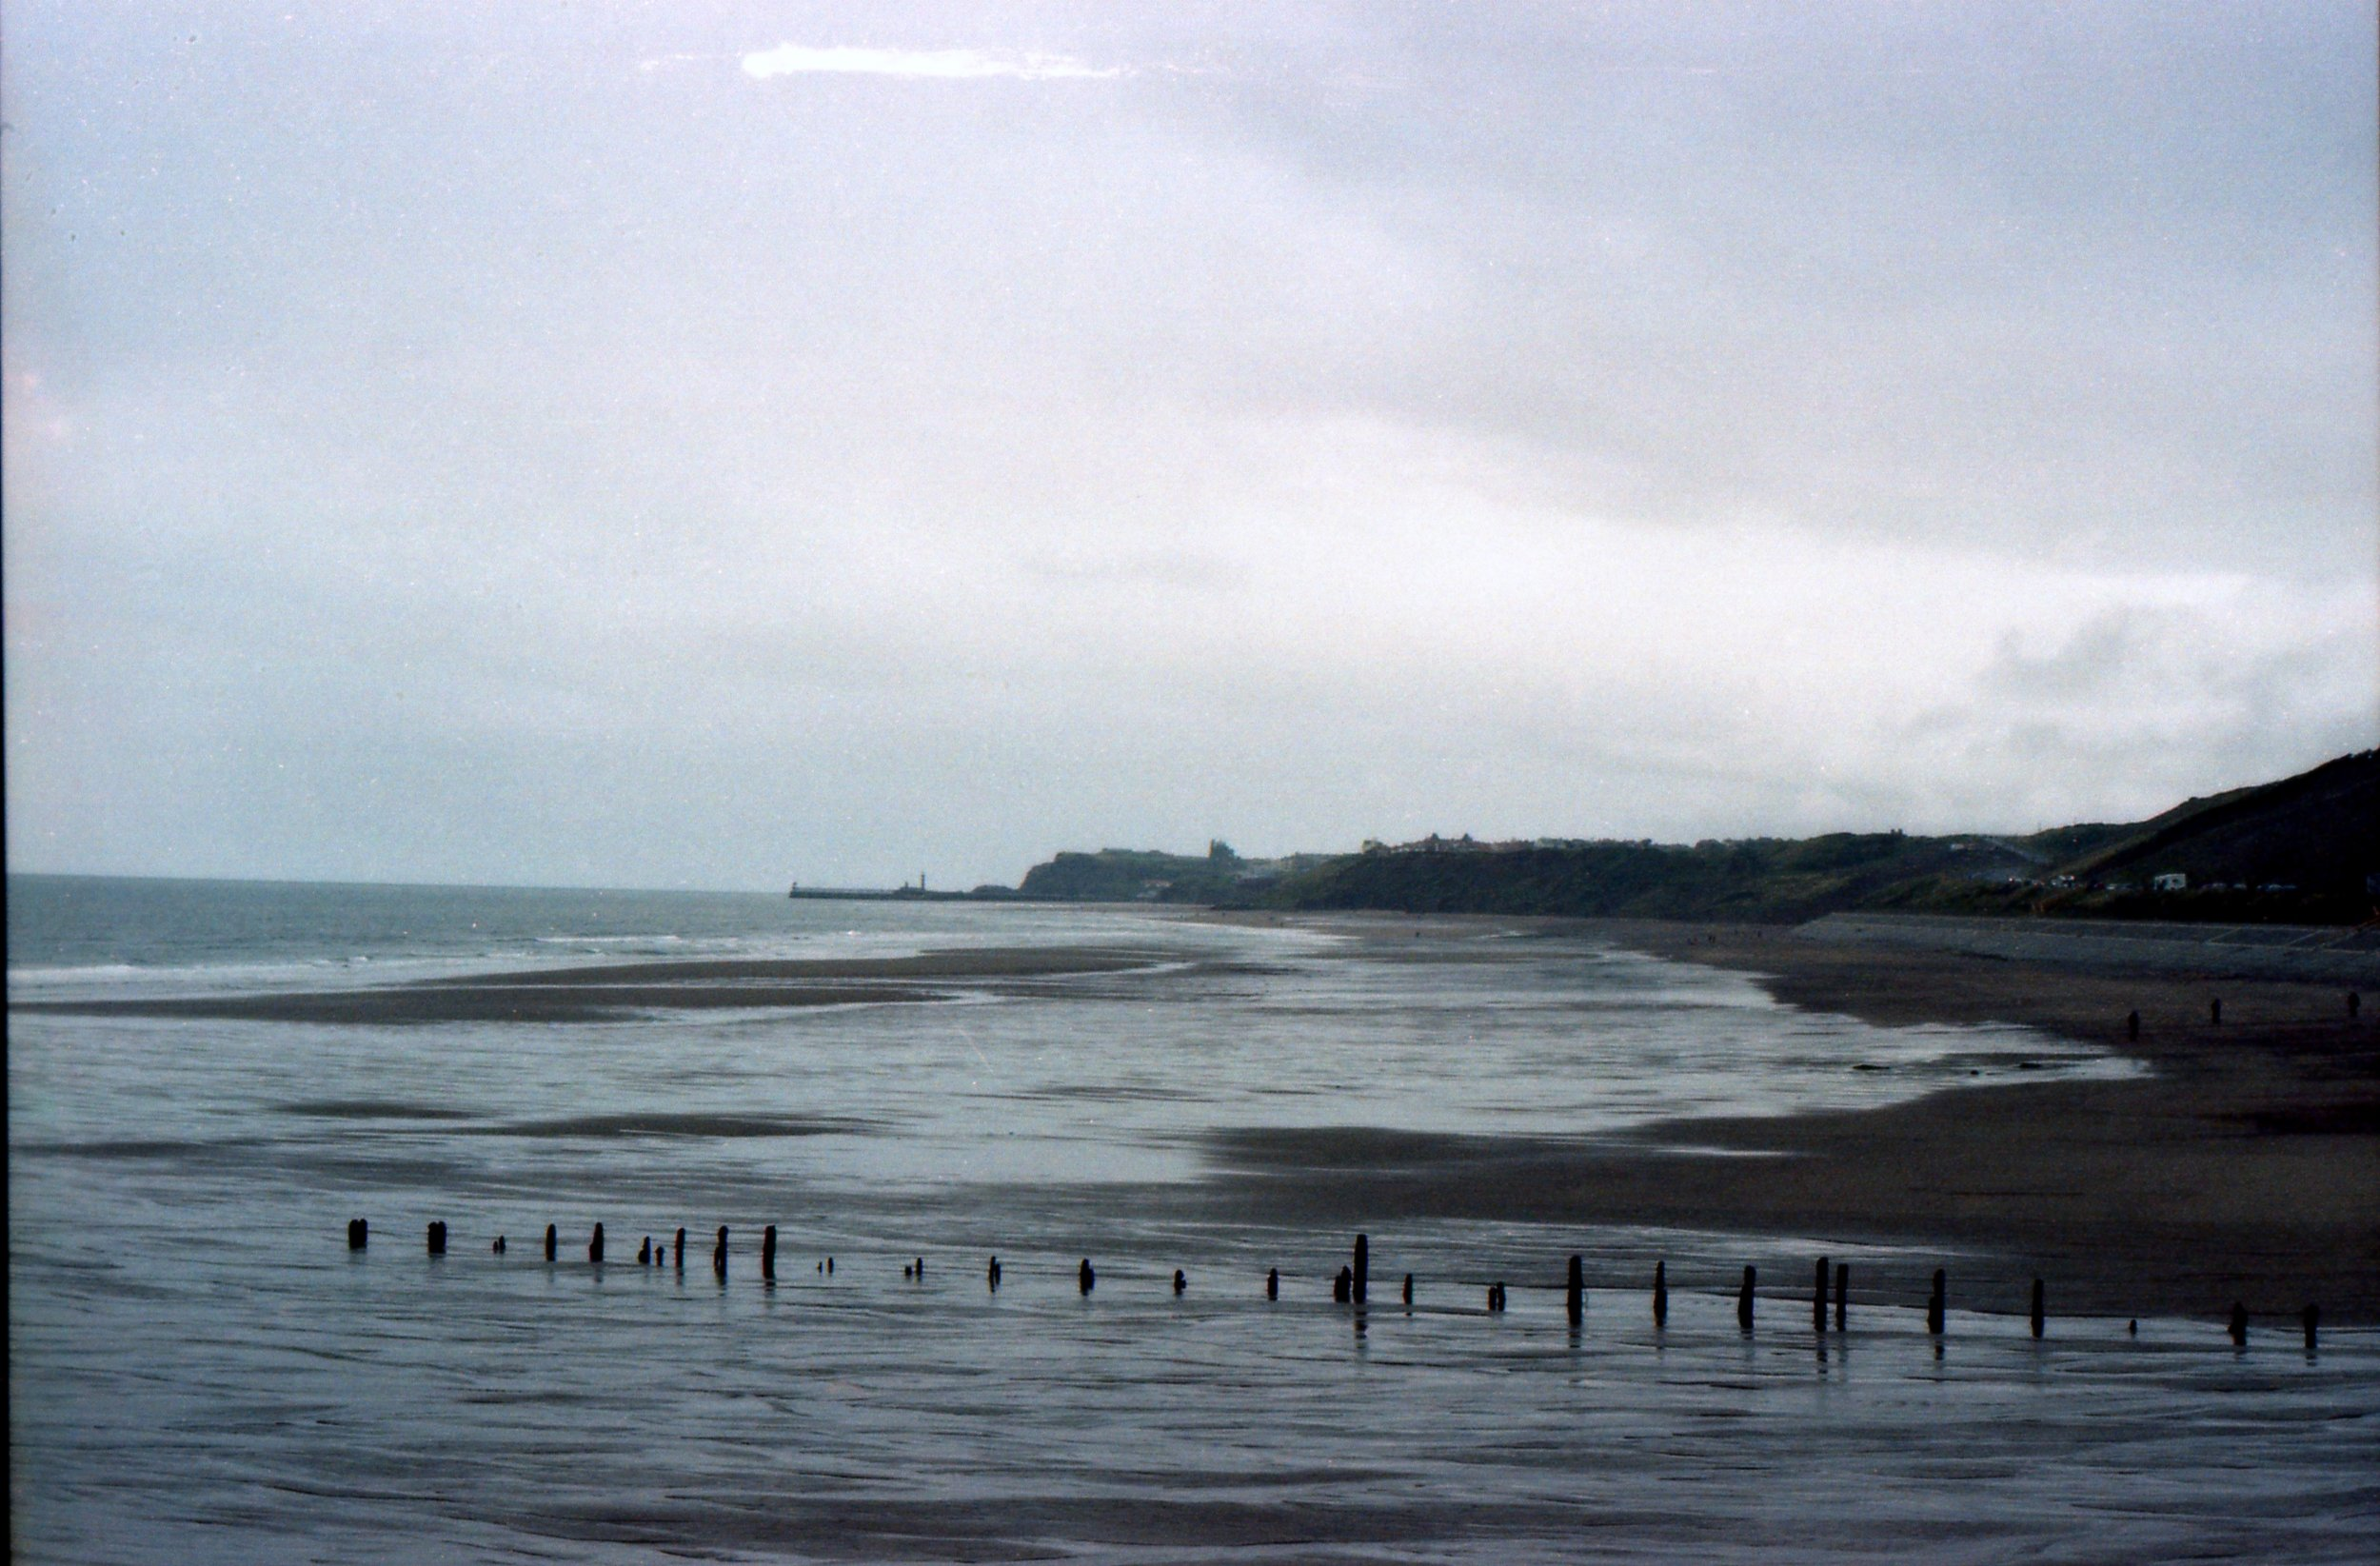 264/366 - We walked from Whitby to Sandsend and it was as lovely as I remembered, even on a grey day where we got caught (and soaked) in the rain.